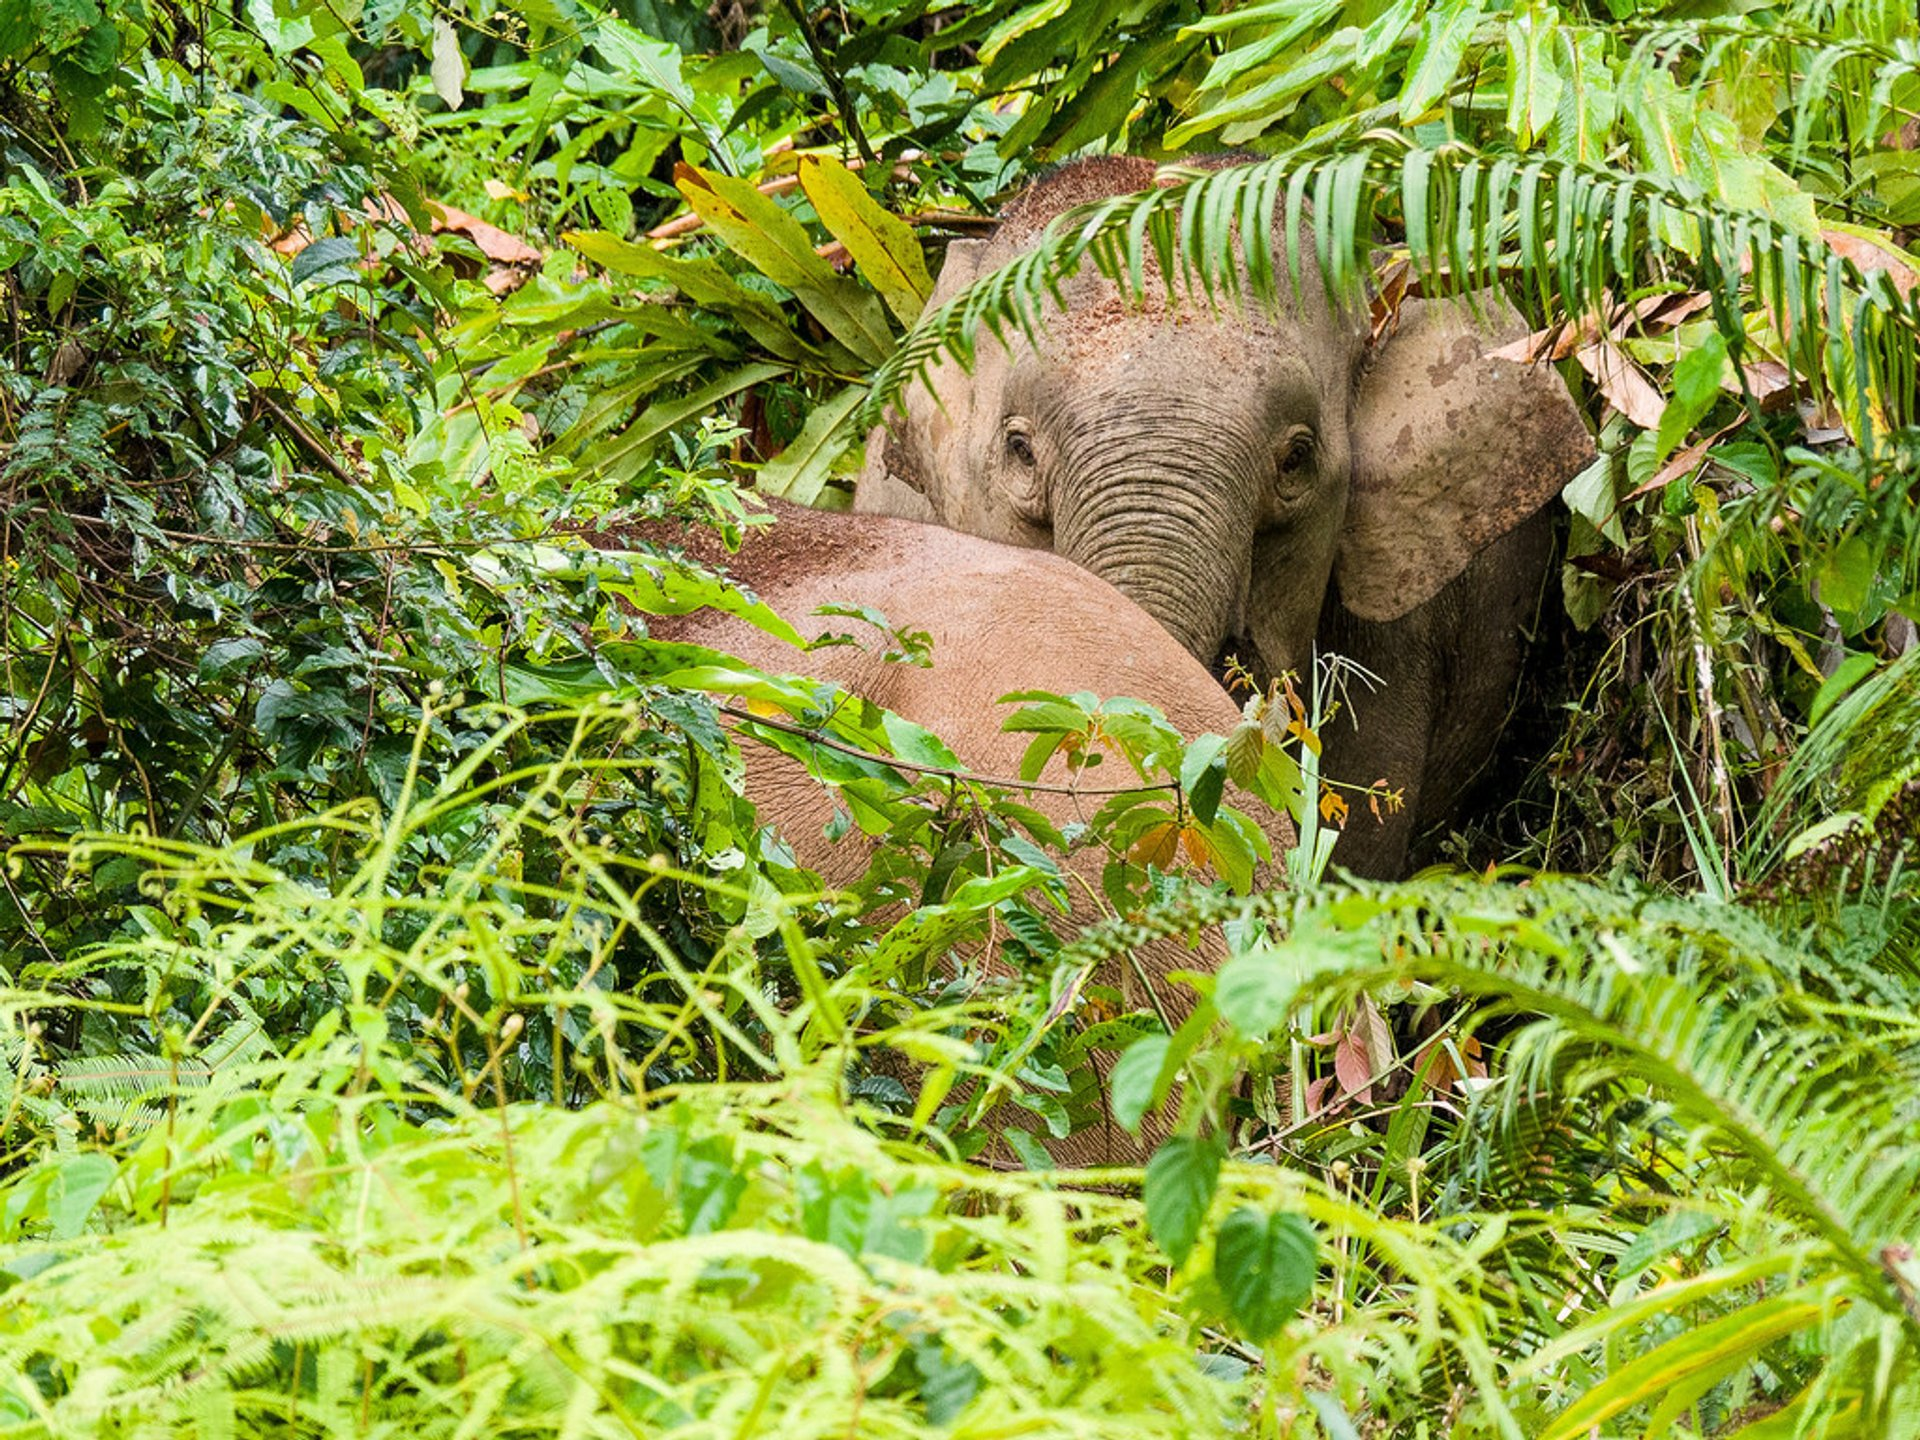 Pygmy Elephants in Malaysia 2020 - Best Time